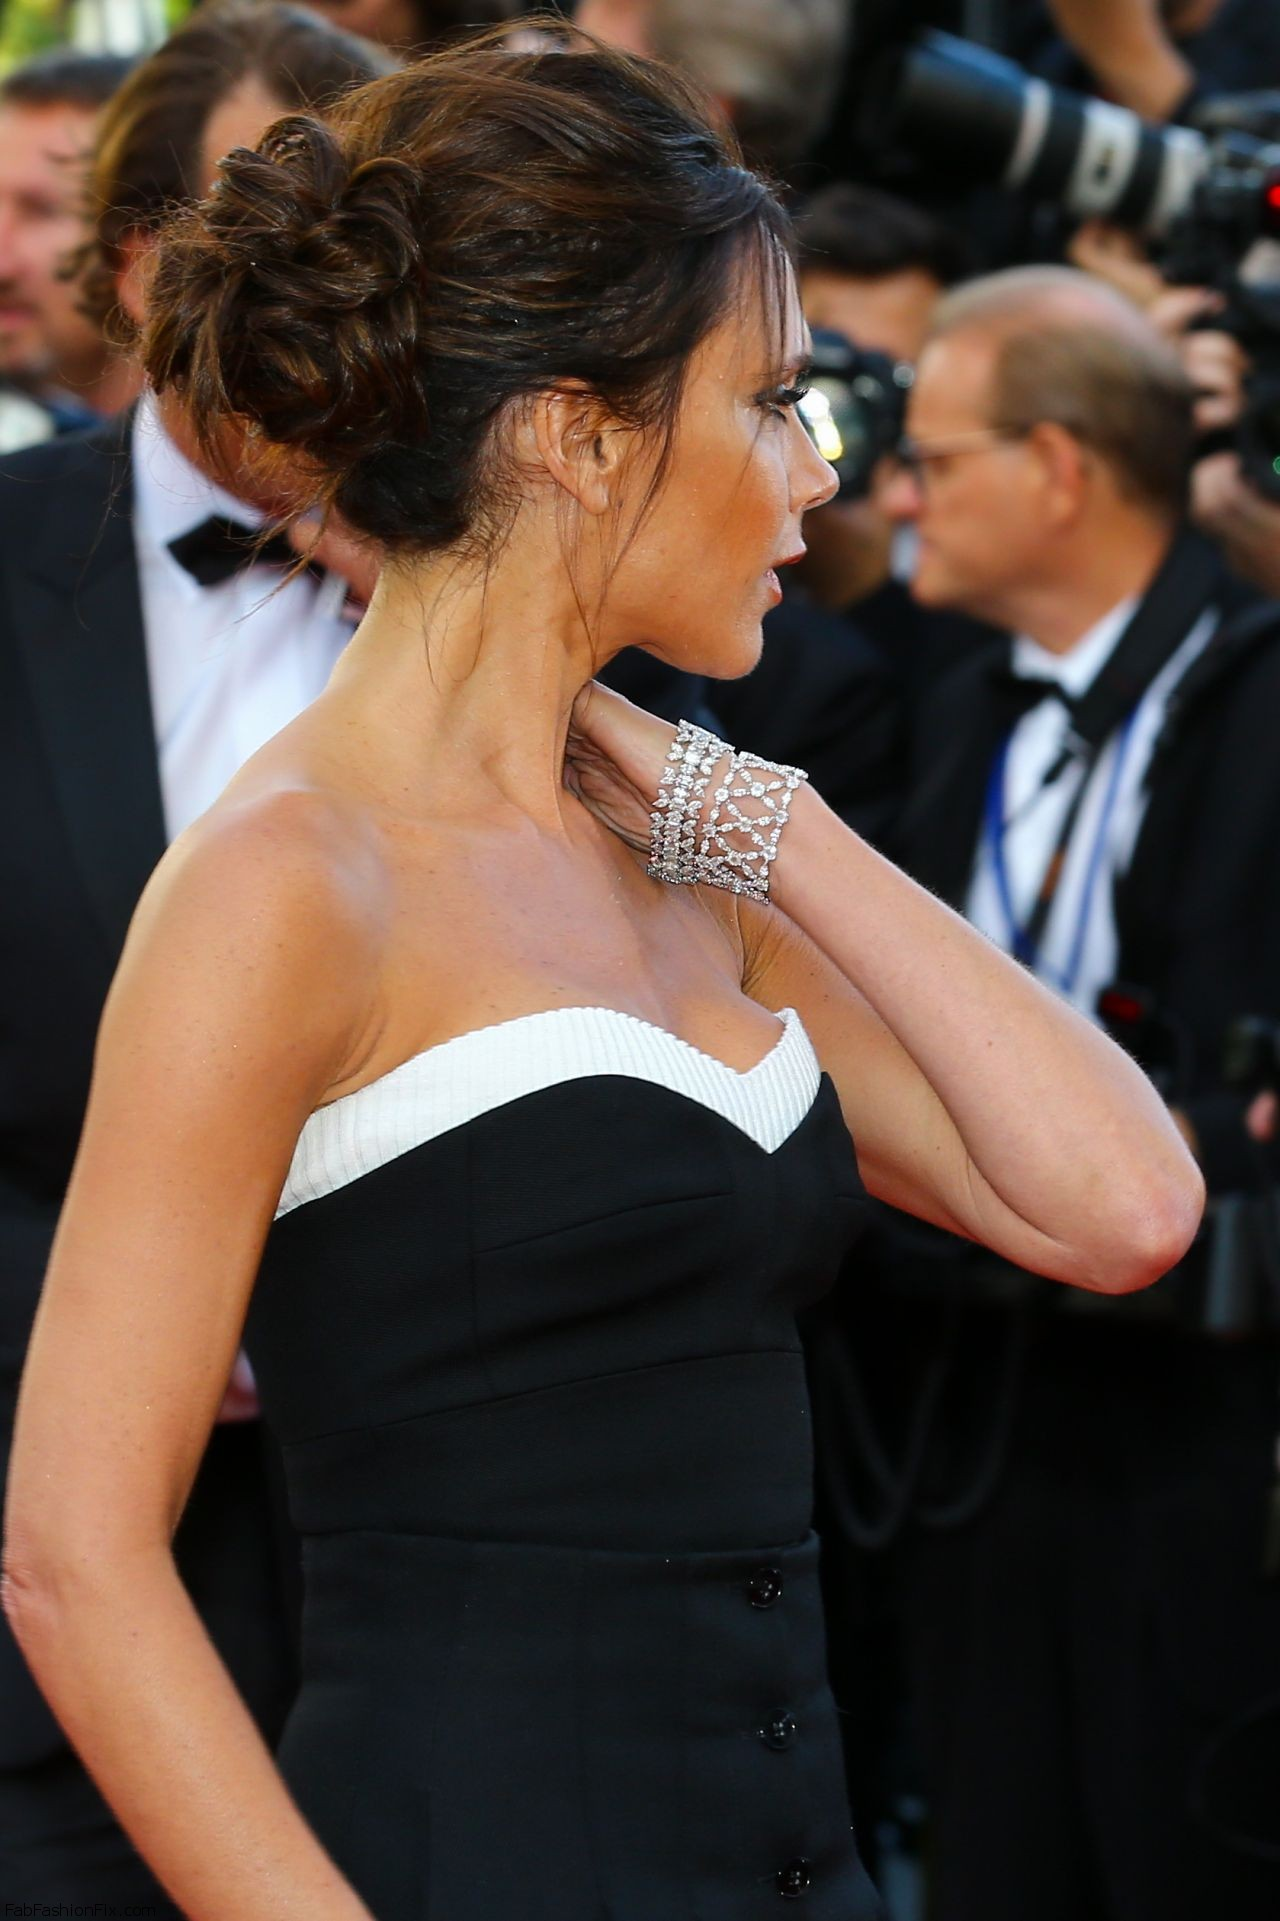 victoria-beckham-cafe-society-premiere-and-the-opening-night-gala-2016-cannes-film-festival-4